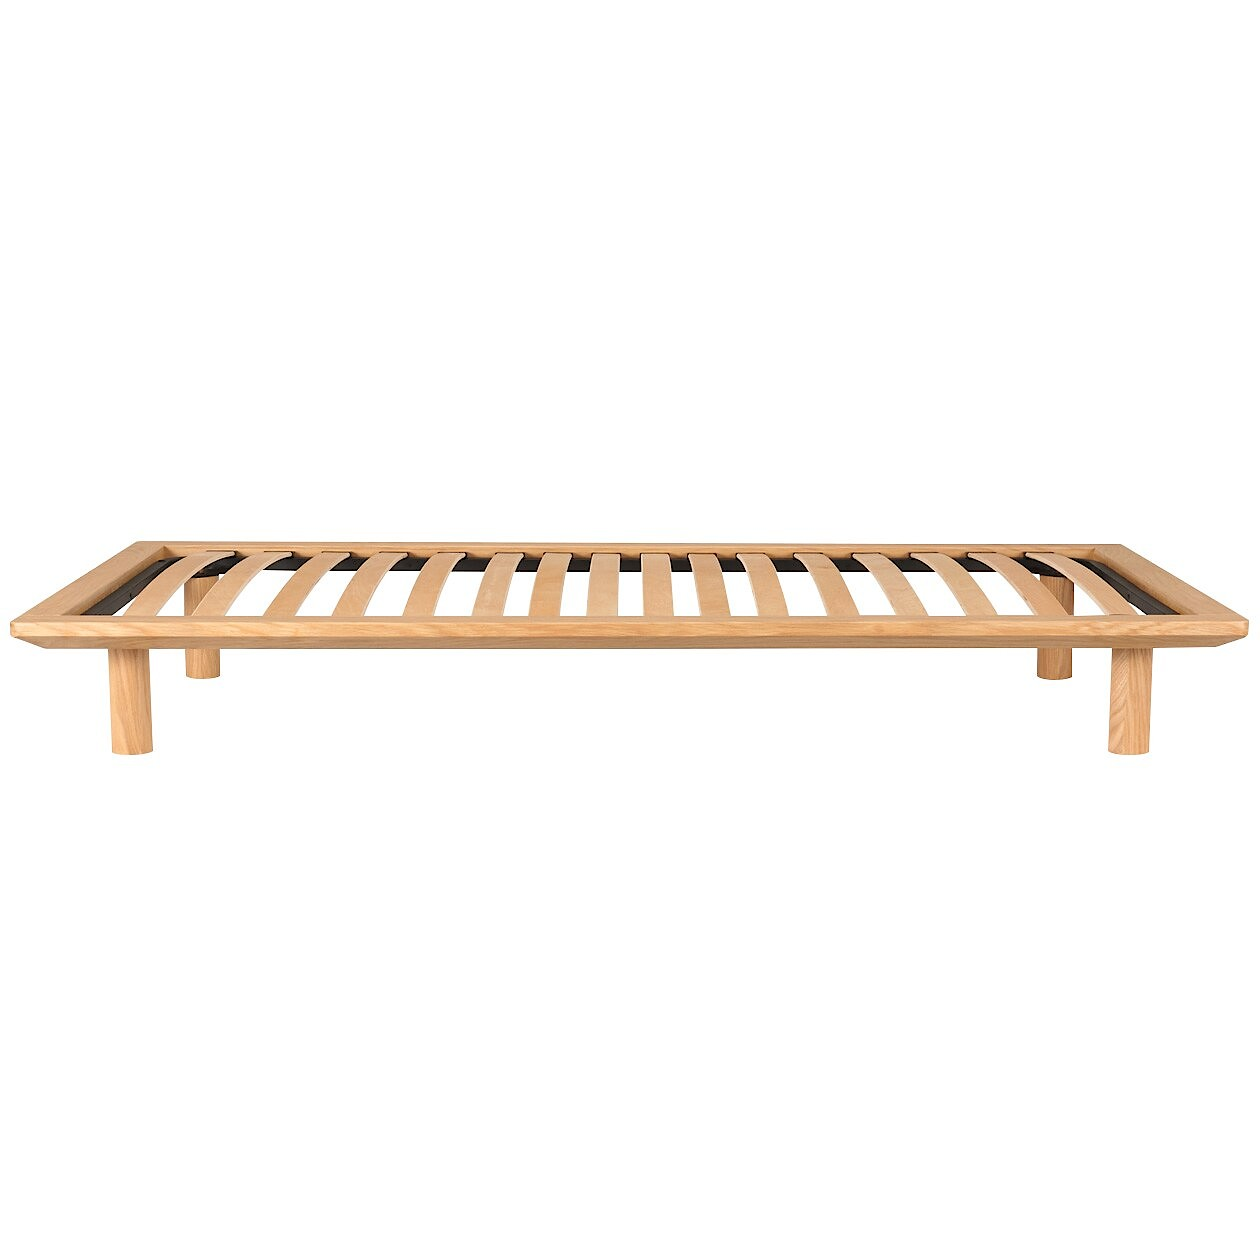 oak wood bed frame